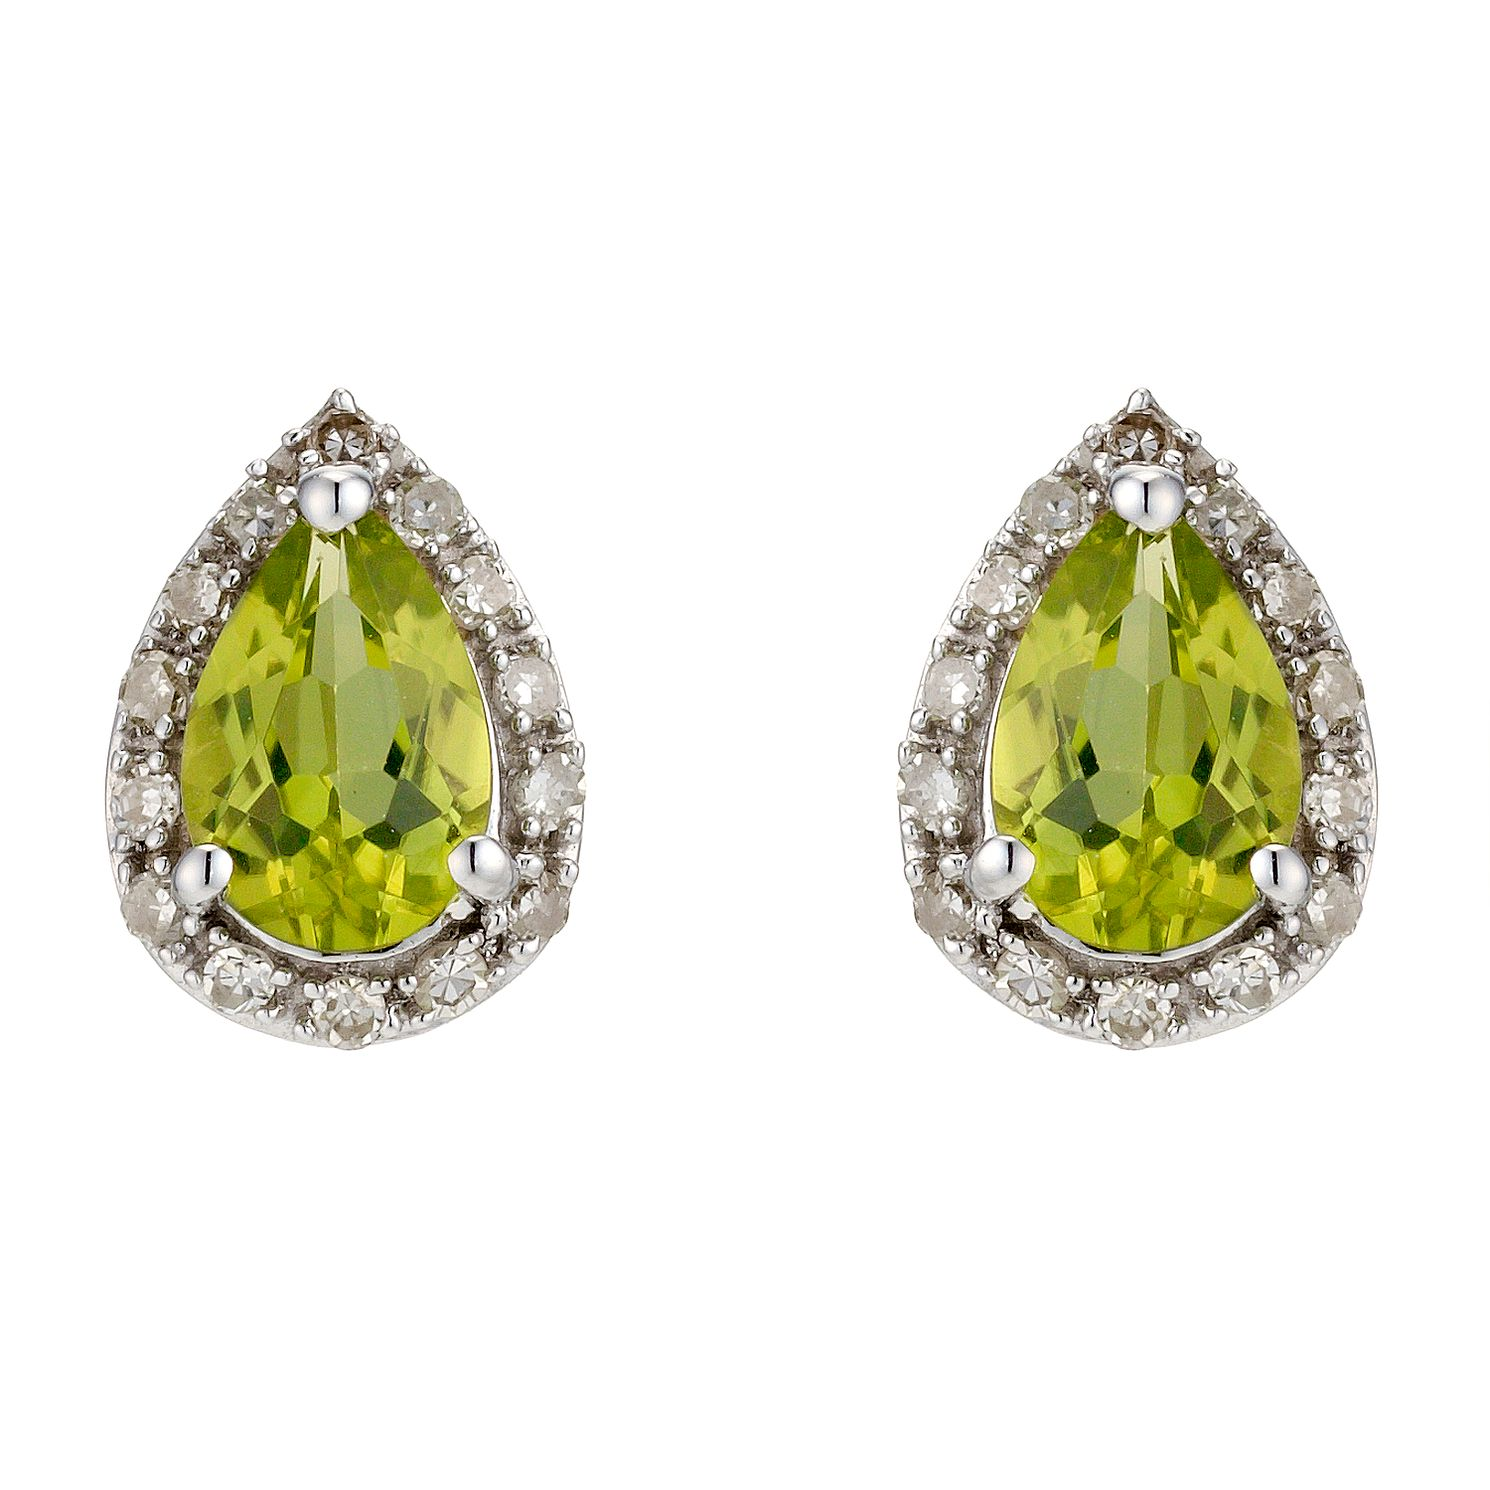 9ct White Gold Peridot & Diamond Earrings - Product number 8929068